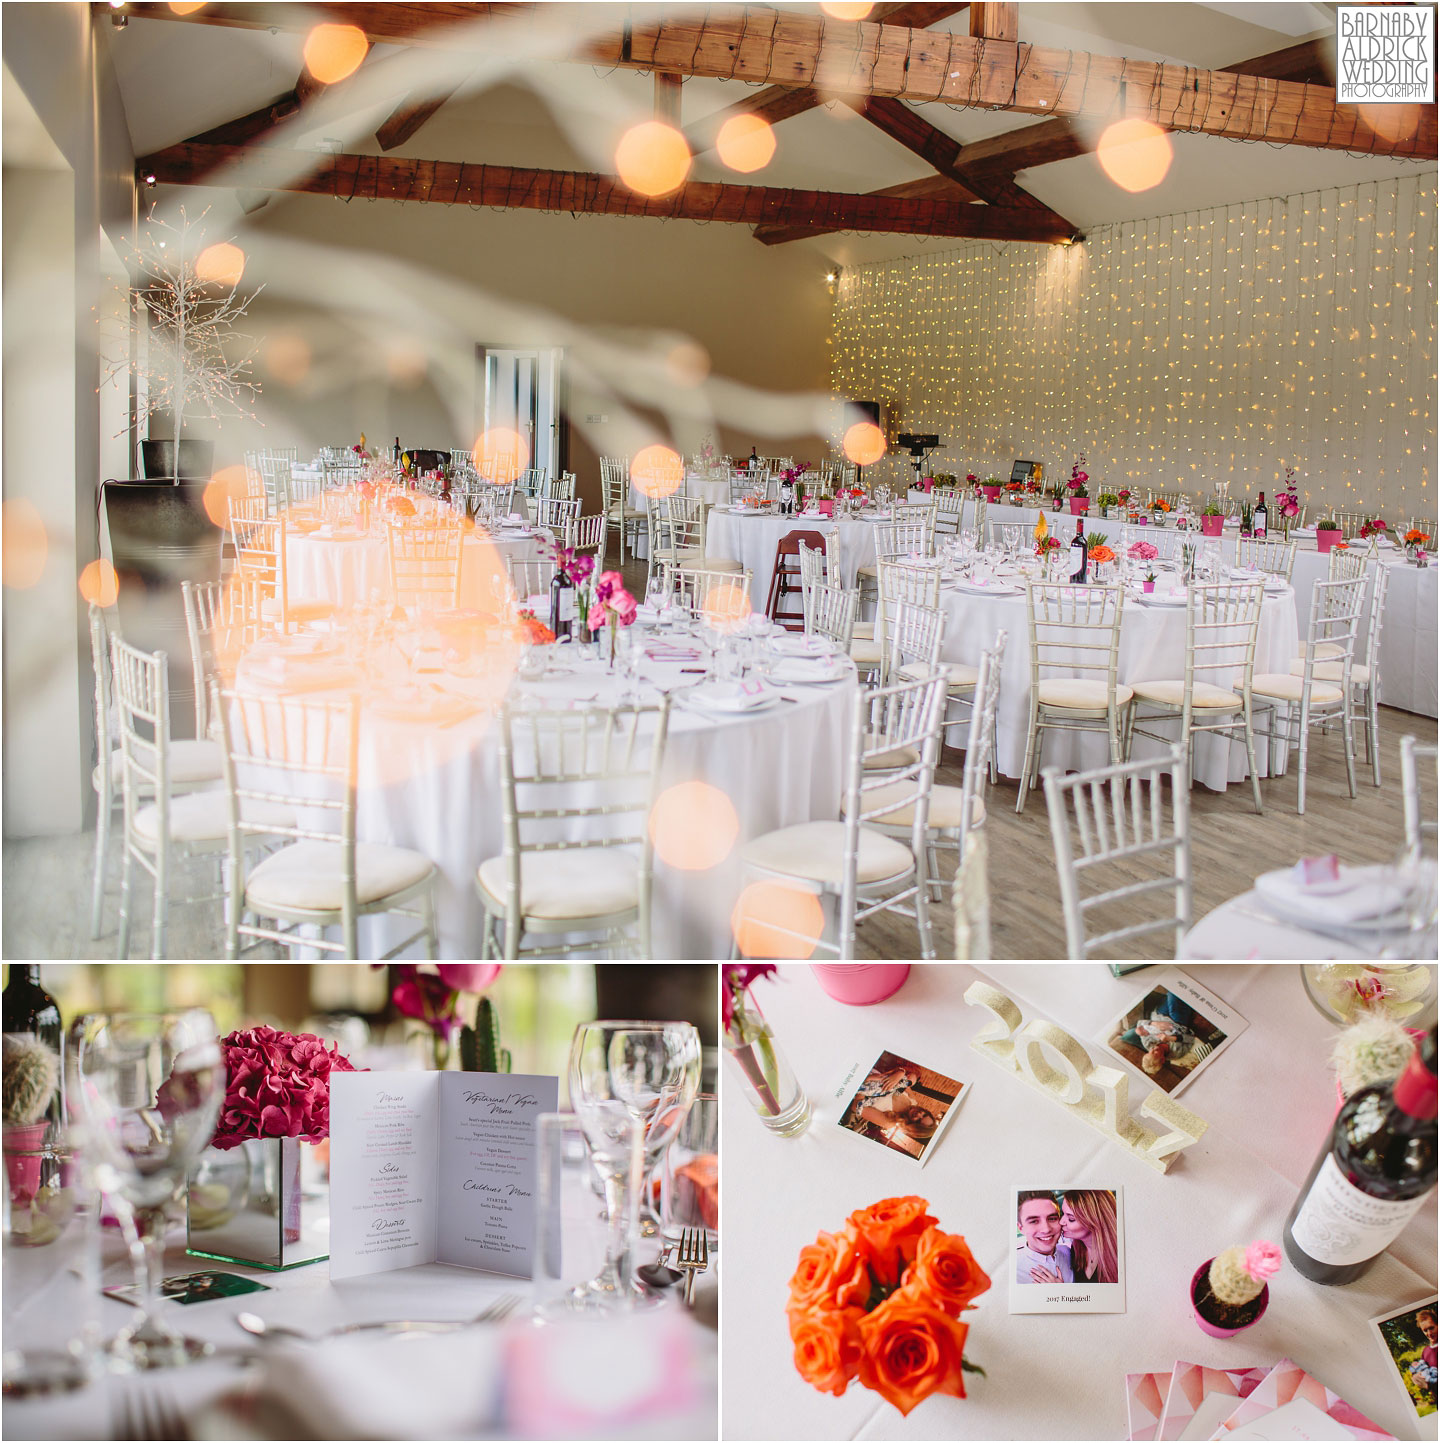 The Wedding Breakfast ideas at Yorkshire Wedding Barn near Richmond